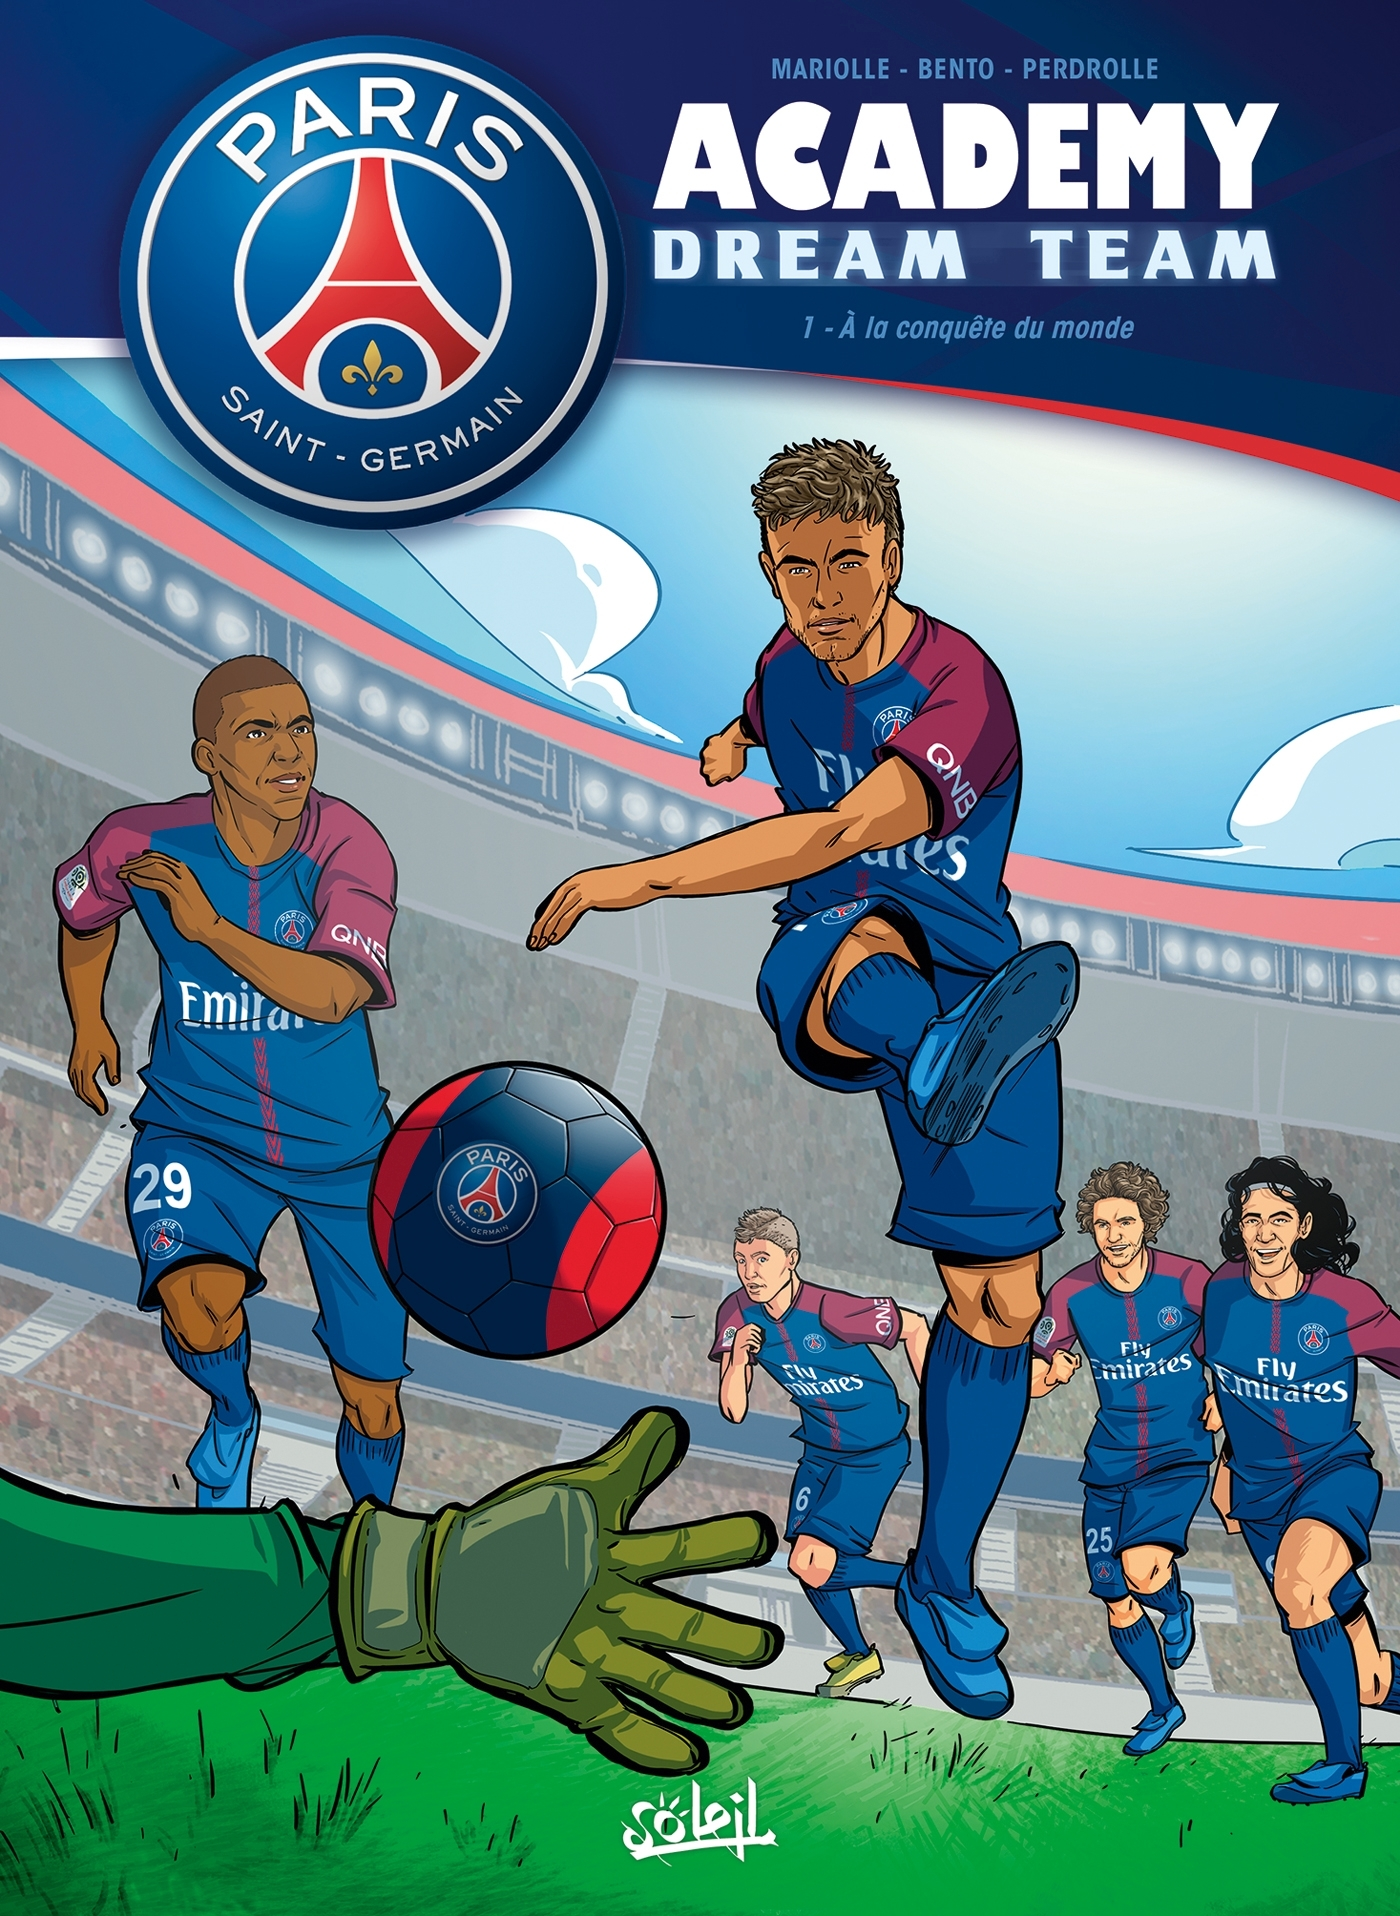 PARIS SAINT-GERMAIN ACADEMY DREAM TEAM 01 - T1